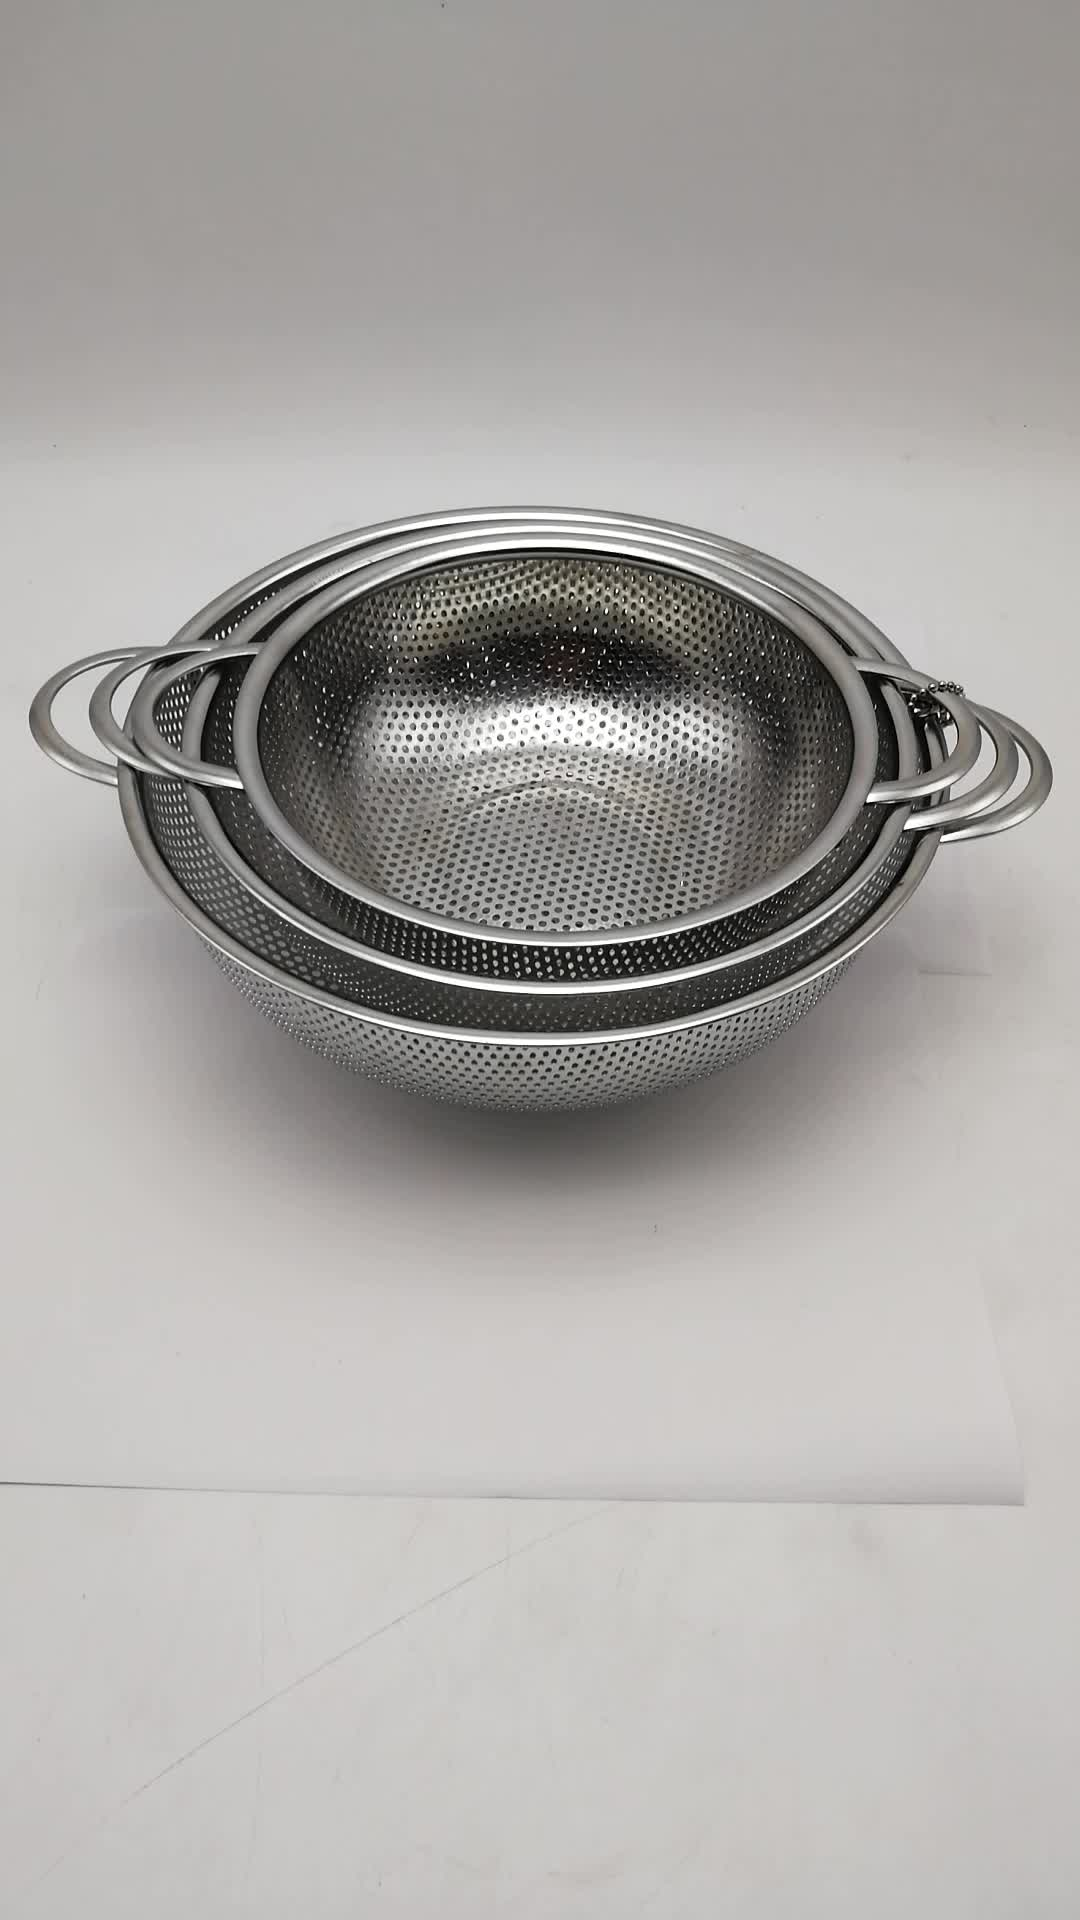 SS colander Stainless steel Rice vegetable colander basket set with Two Handles